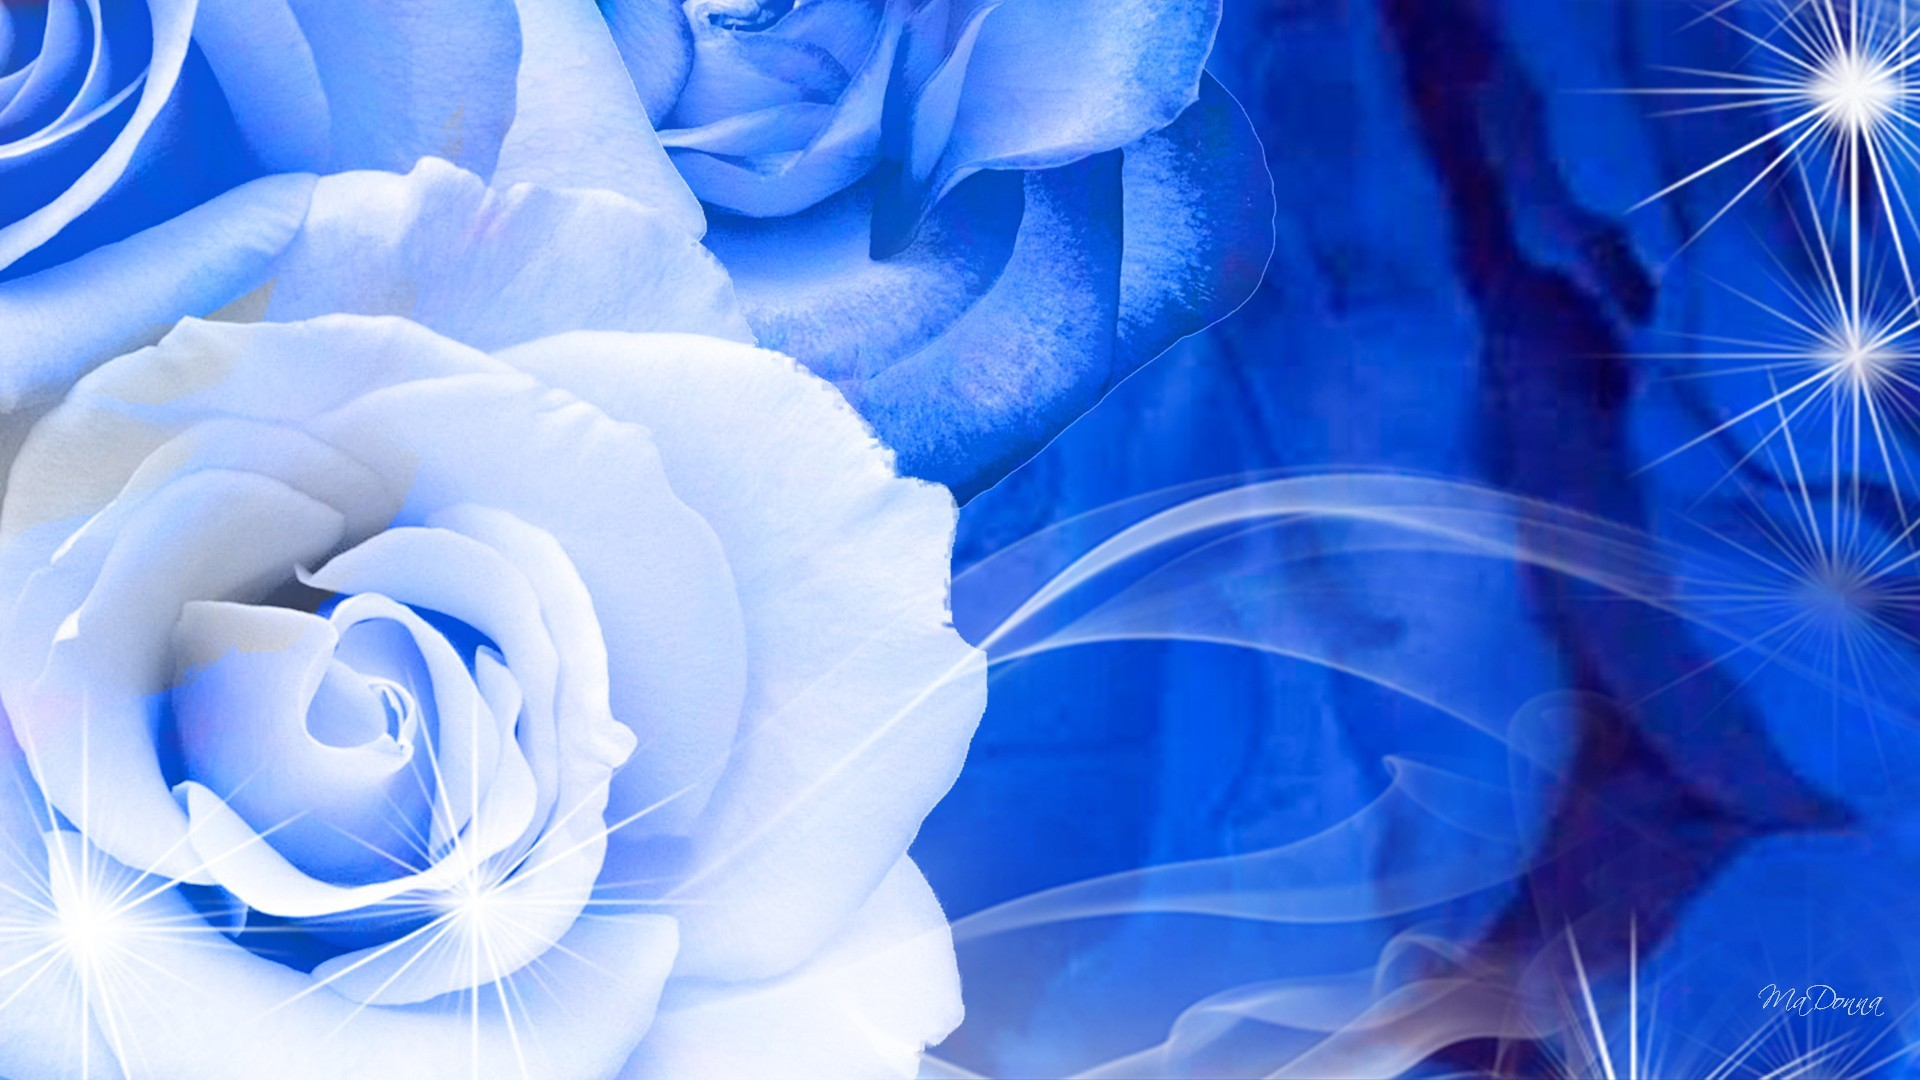 Blue And White Flower Wallpaper: Royal Blue And Gold Wallpaper (48+ Images